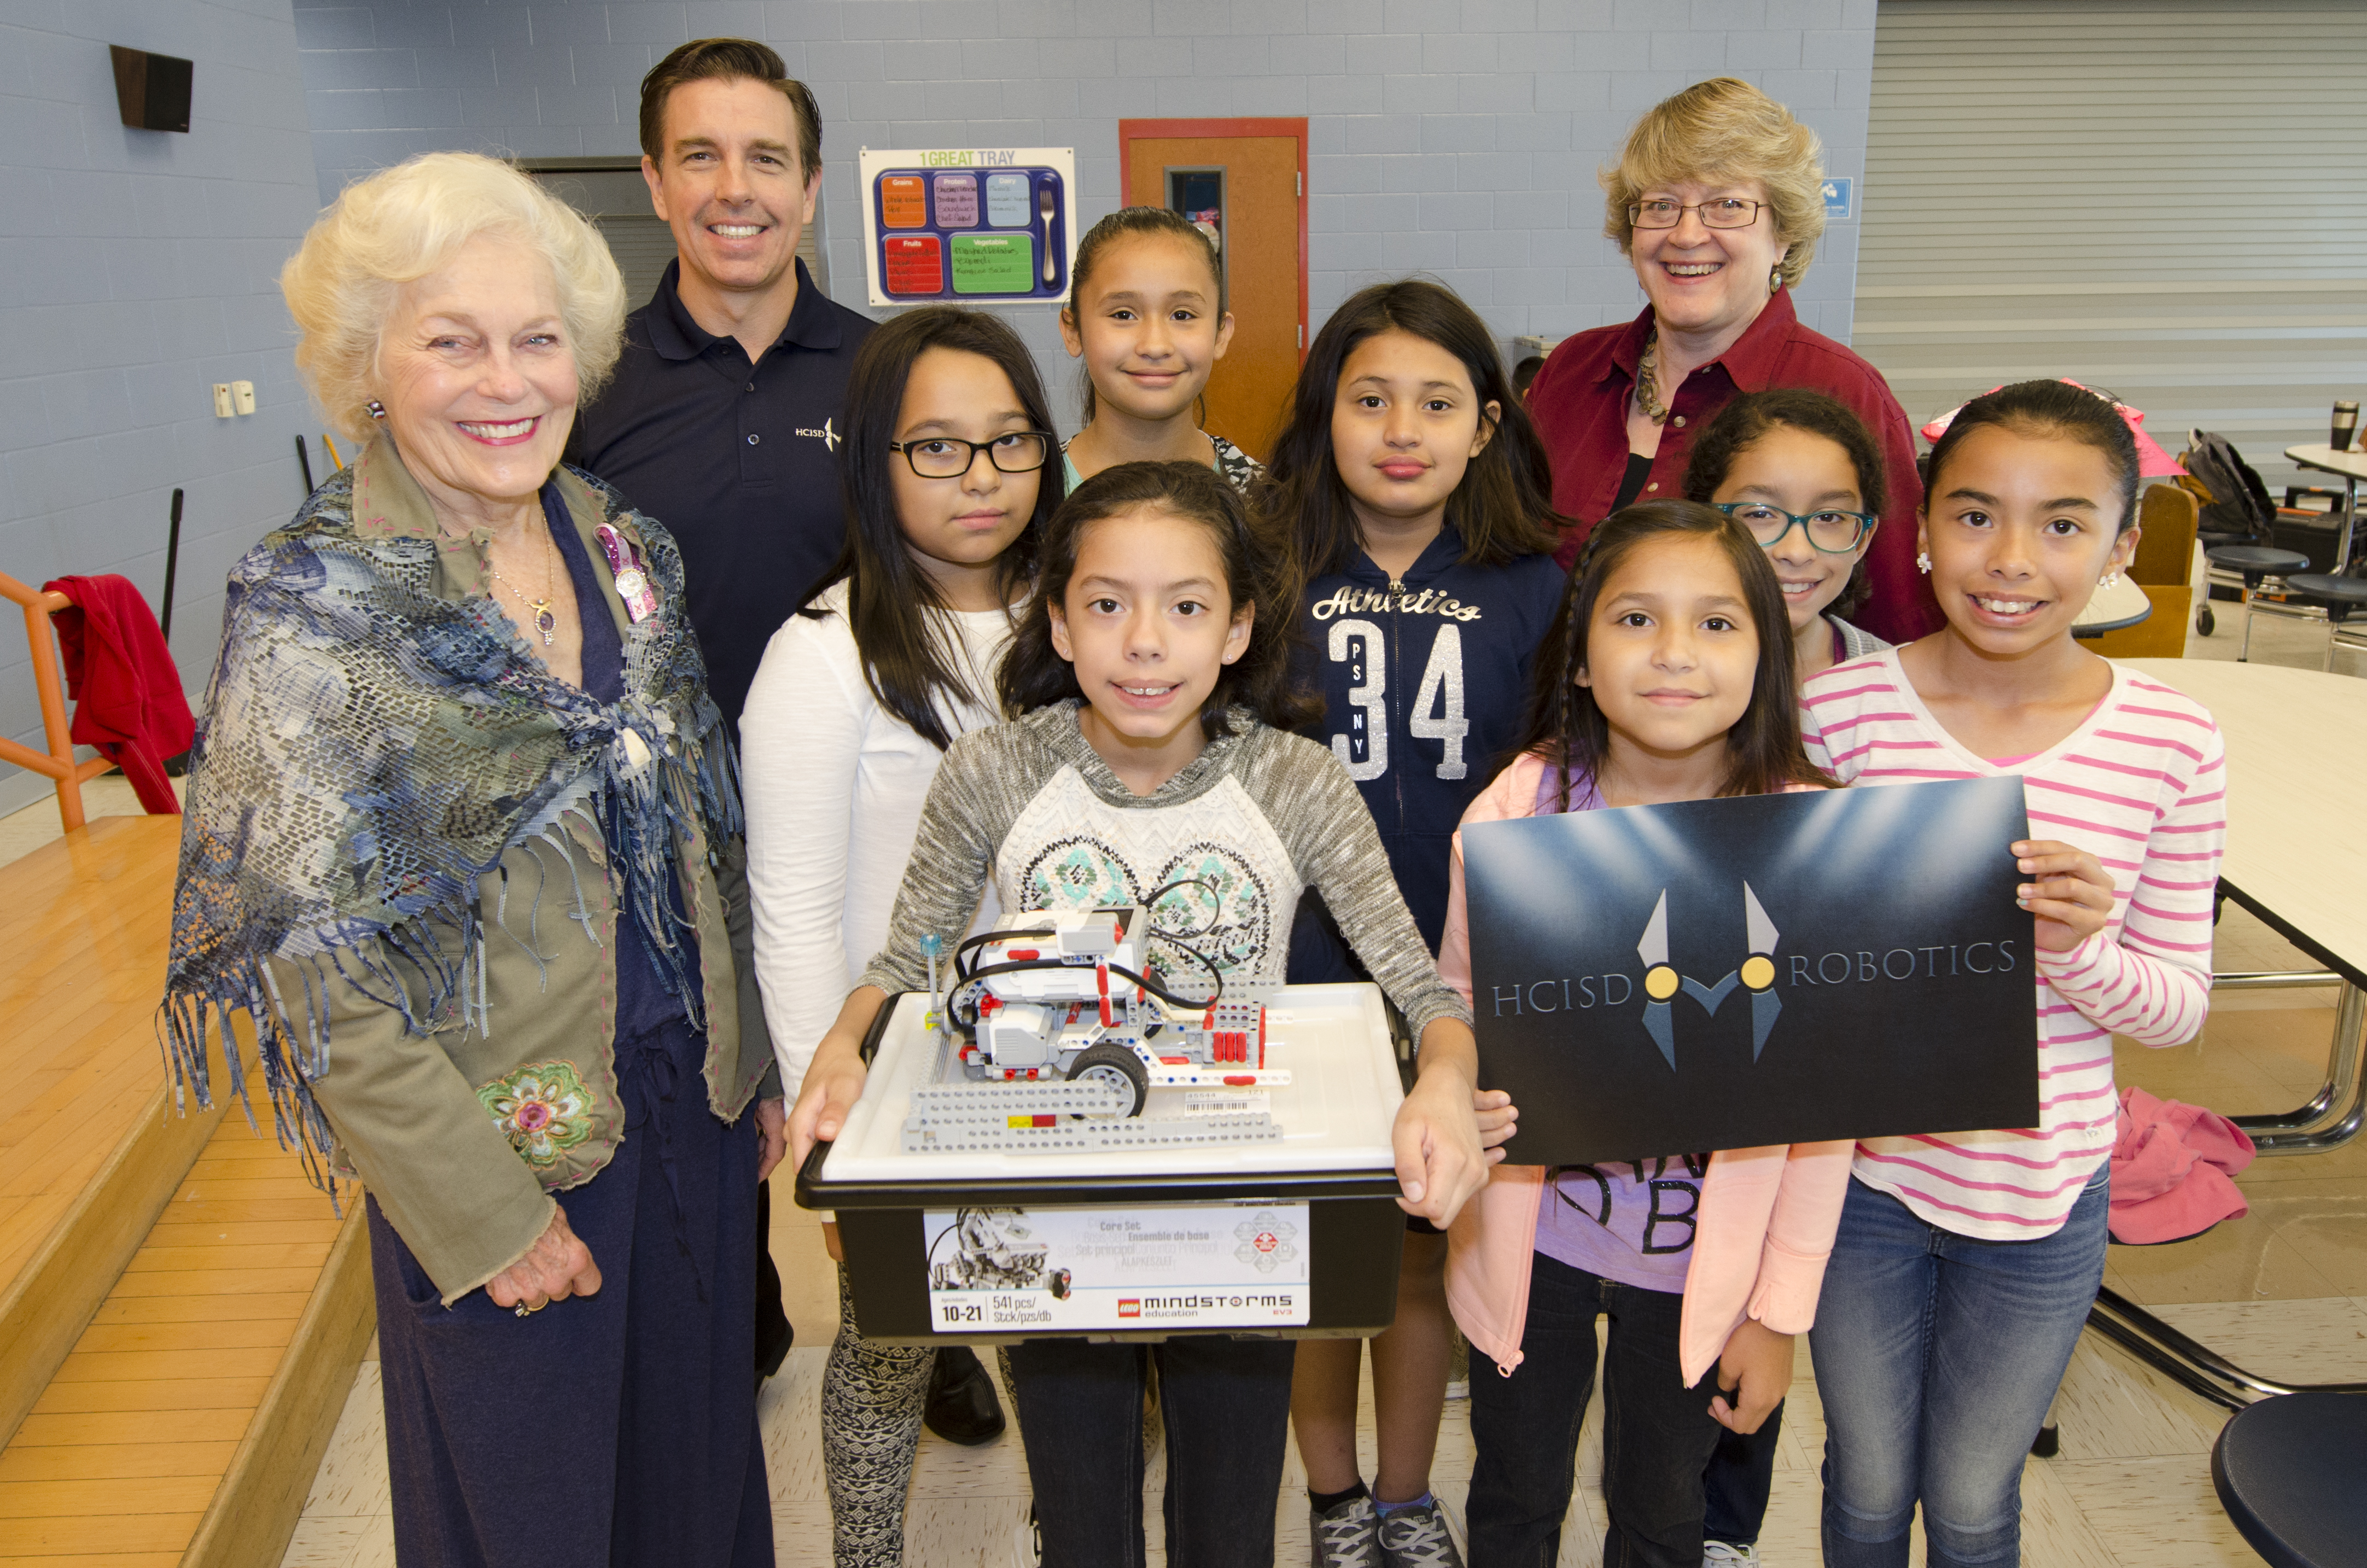 Nearly $10,000 awarded in grants to help boost HCISD robotics teams